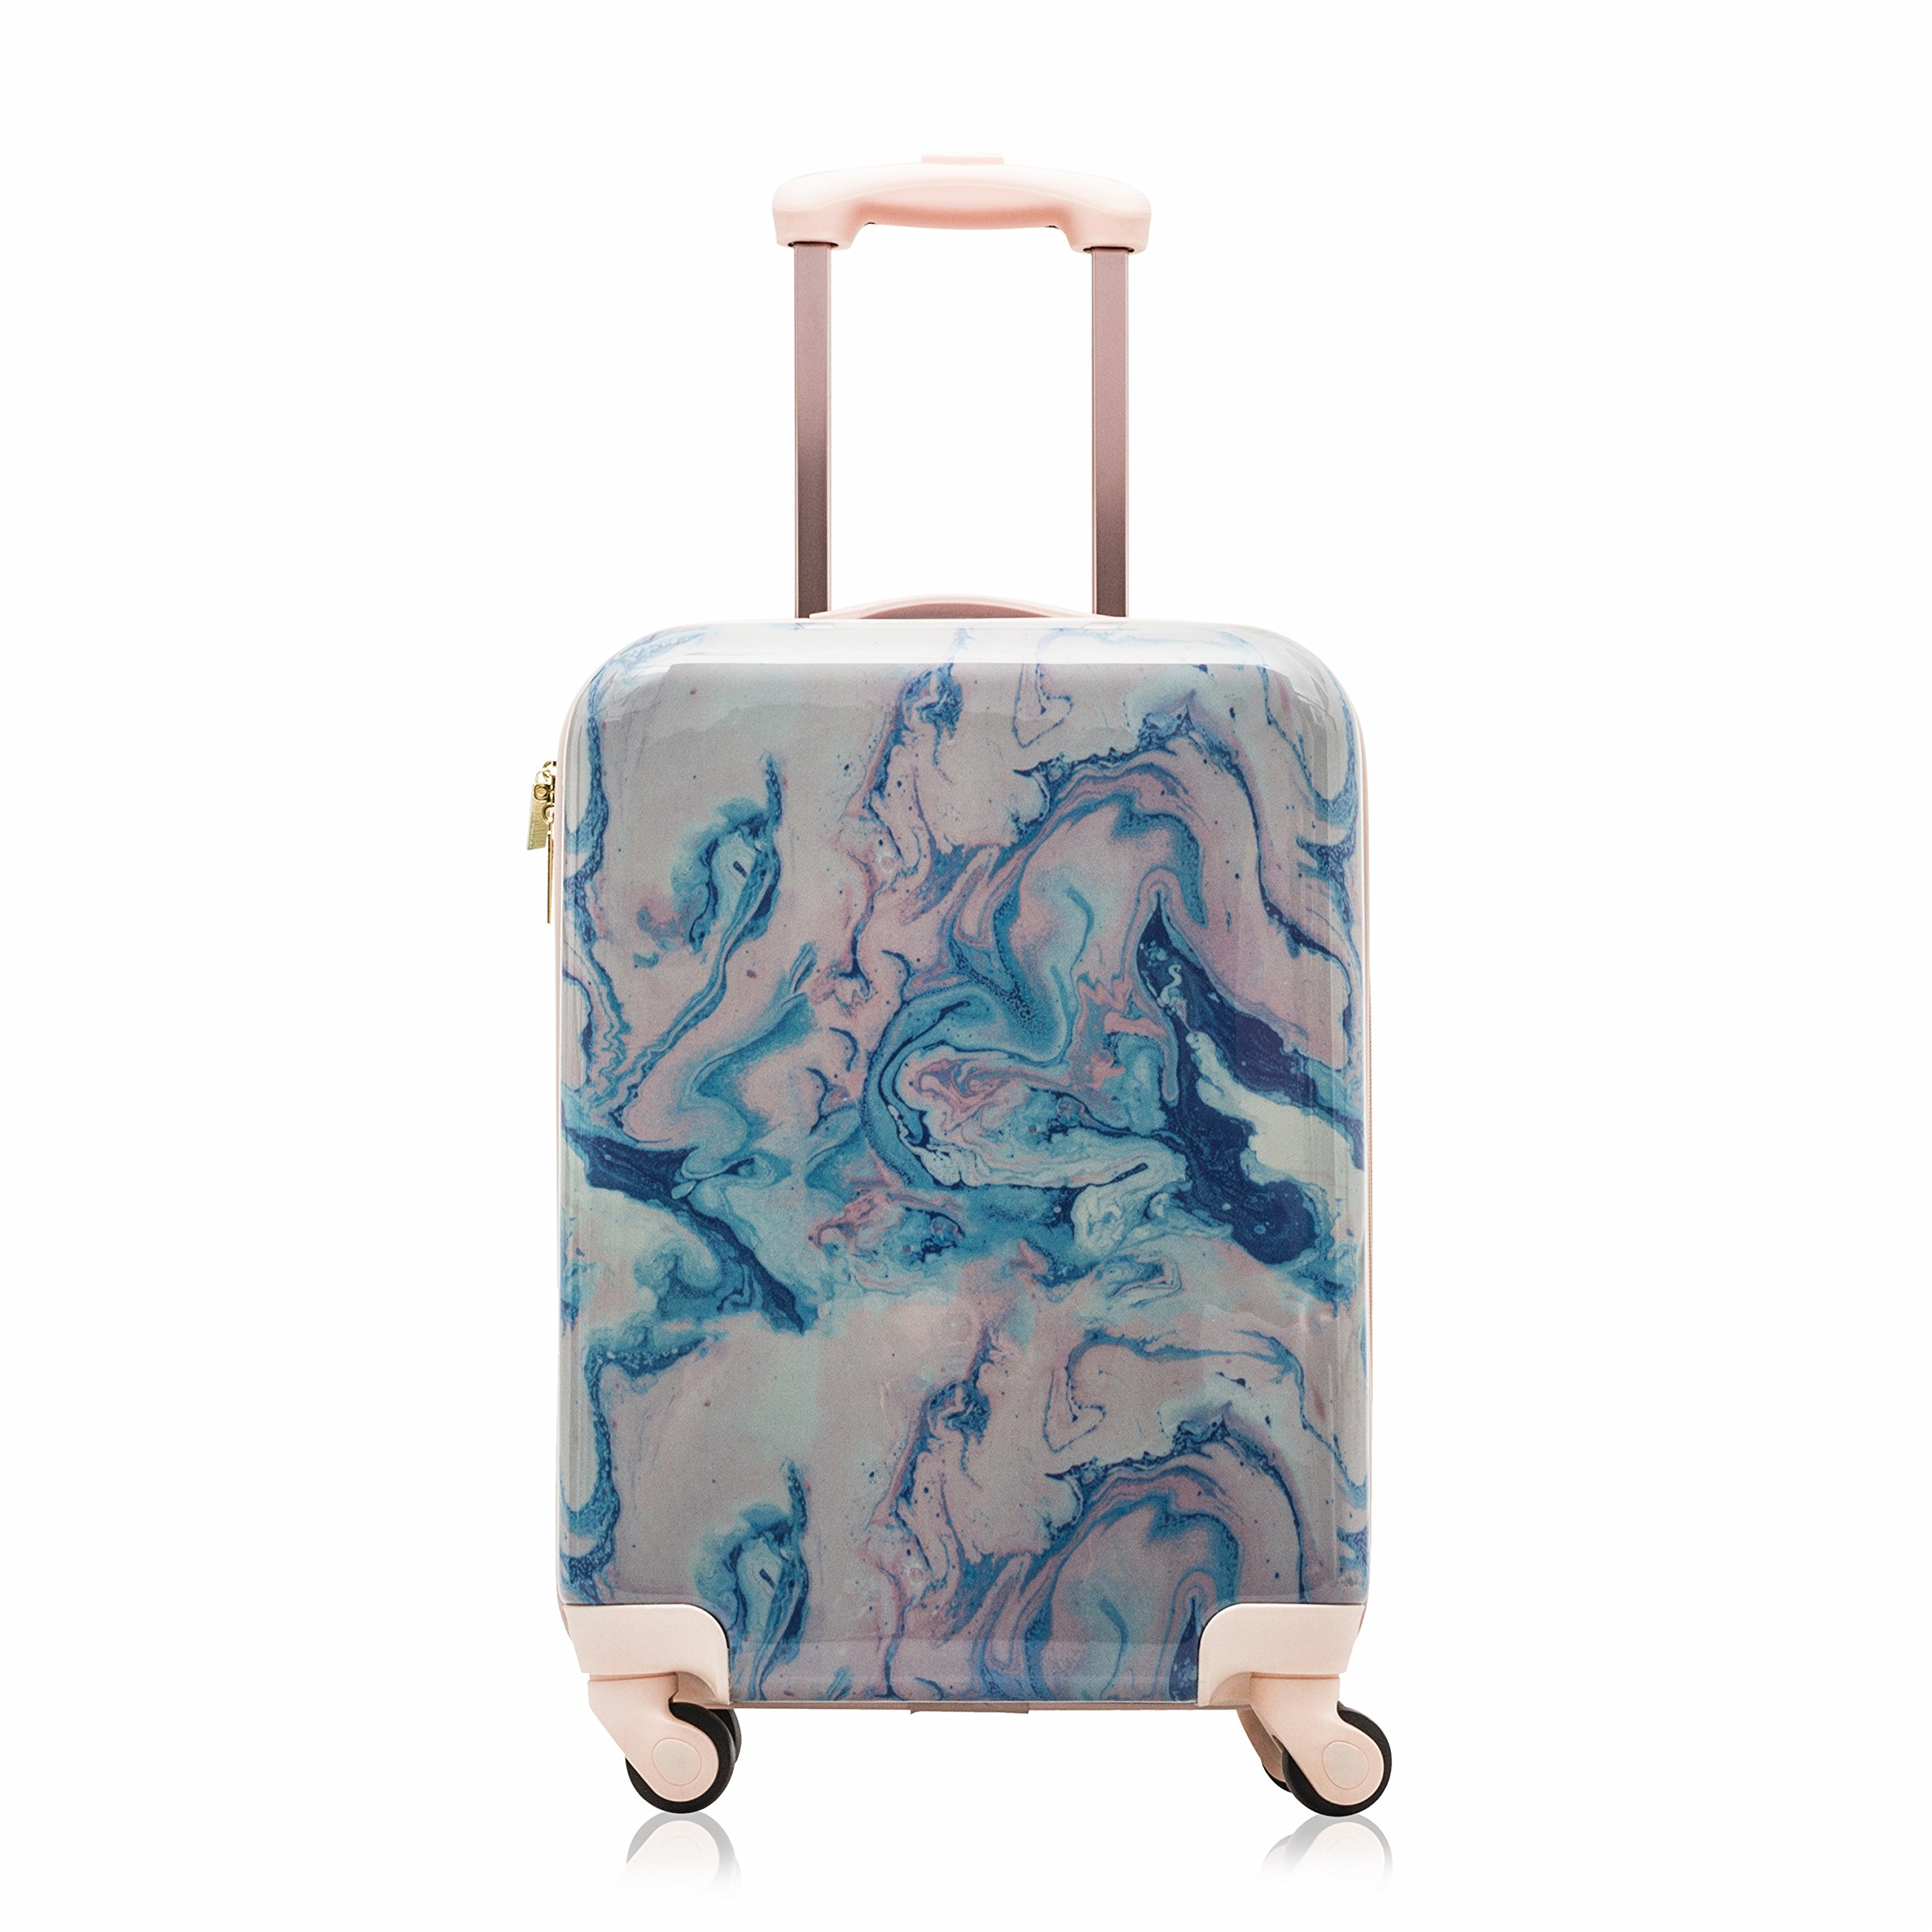 Cosmopolitan Fashion 21''(with Wheels) Flight Legal Hardcase Carry-on Suitcase (Pink) by Cosmopolitan